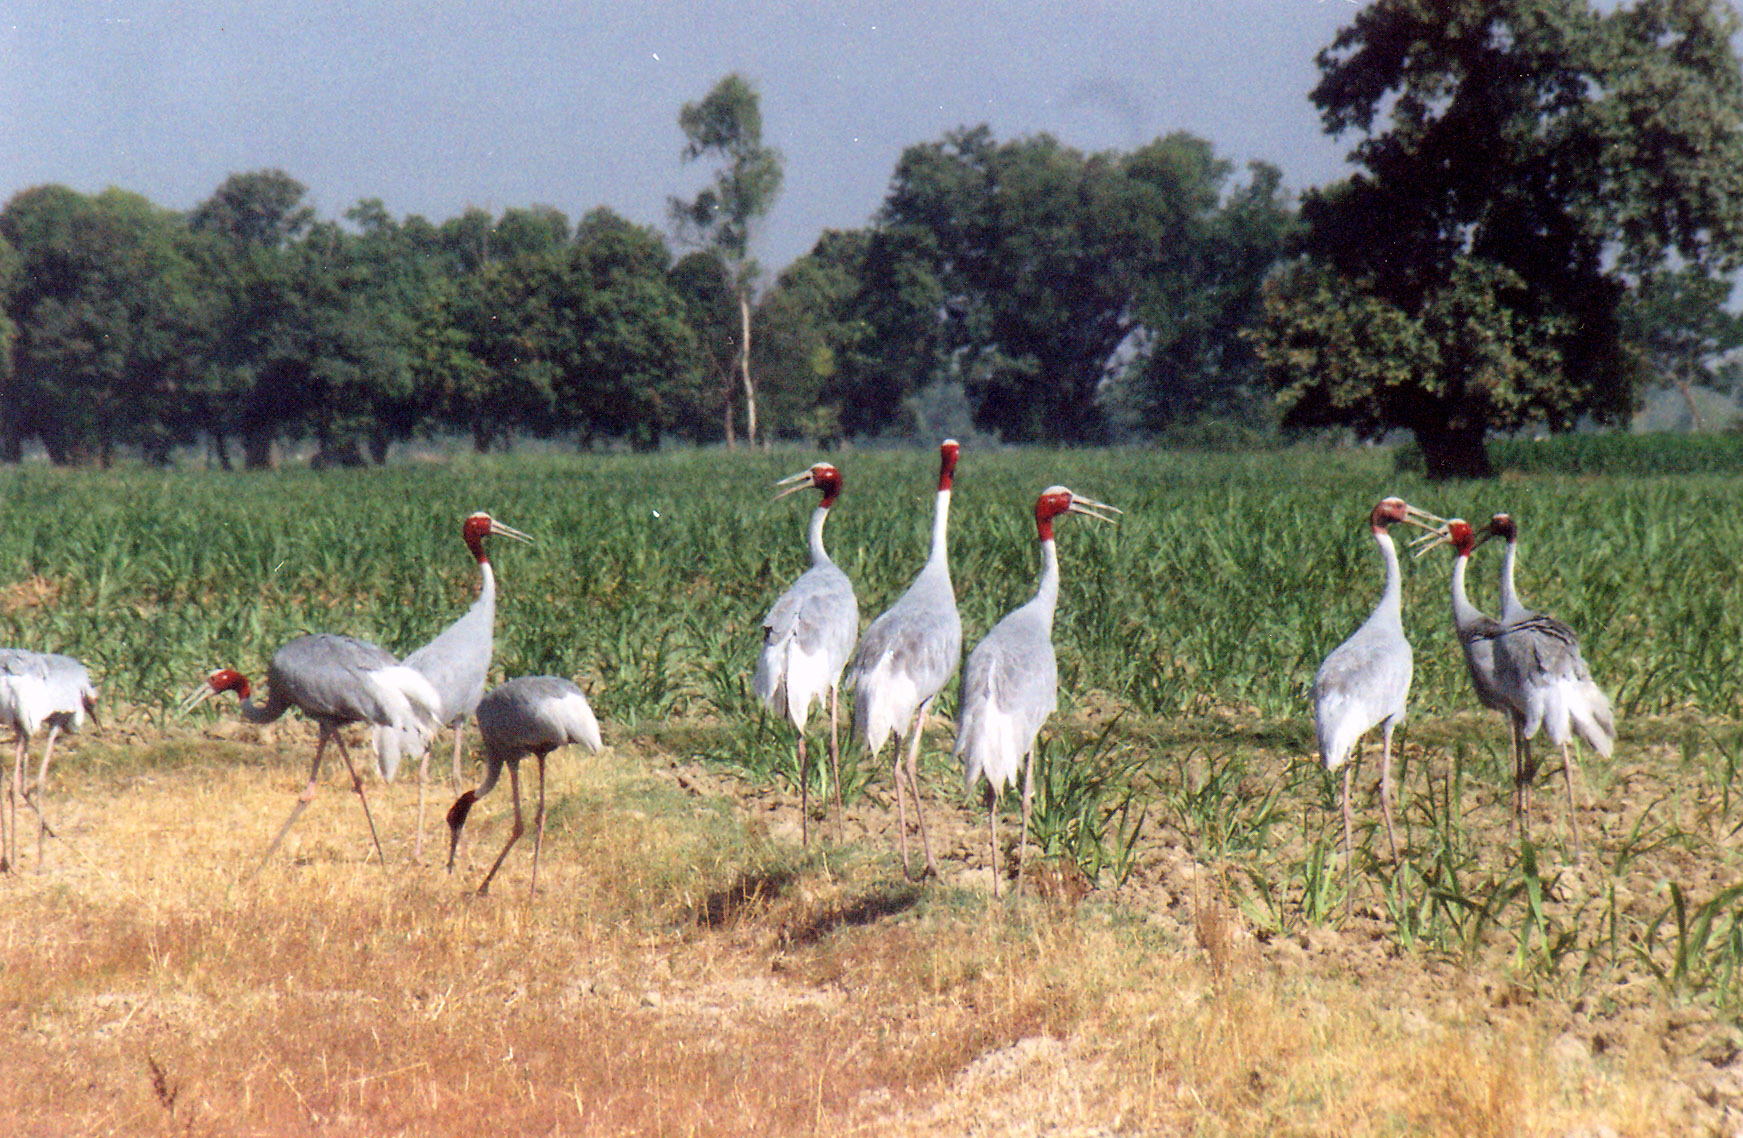 Kishanpur Wildlife Sanctuary